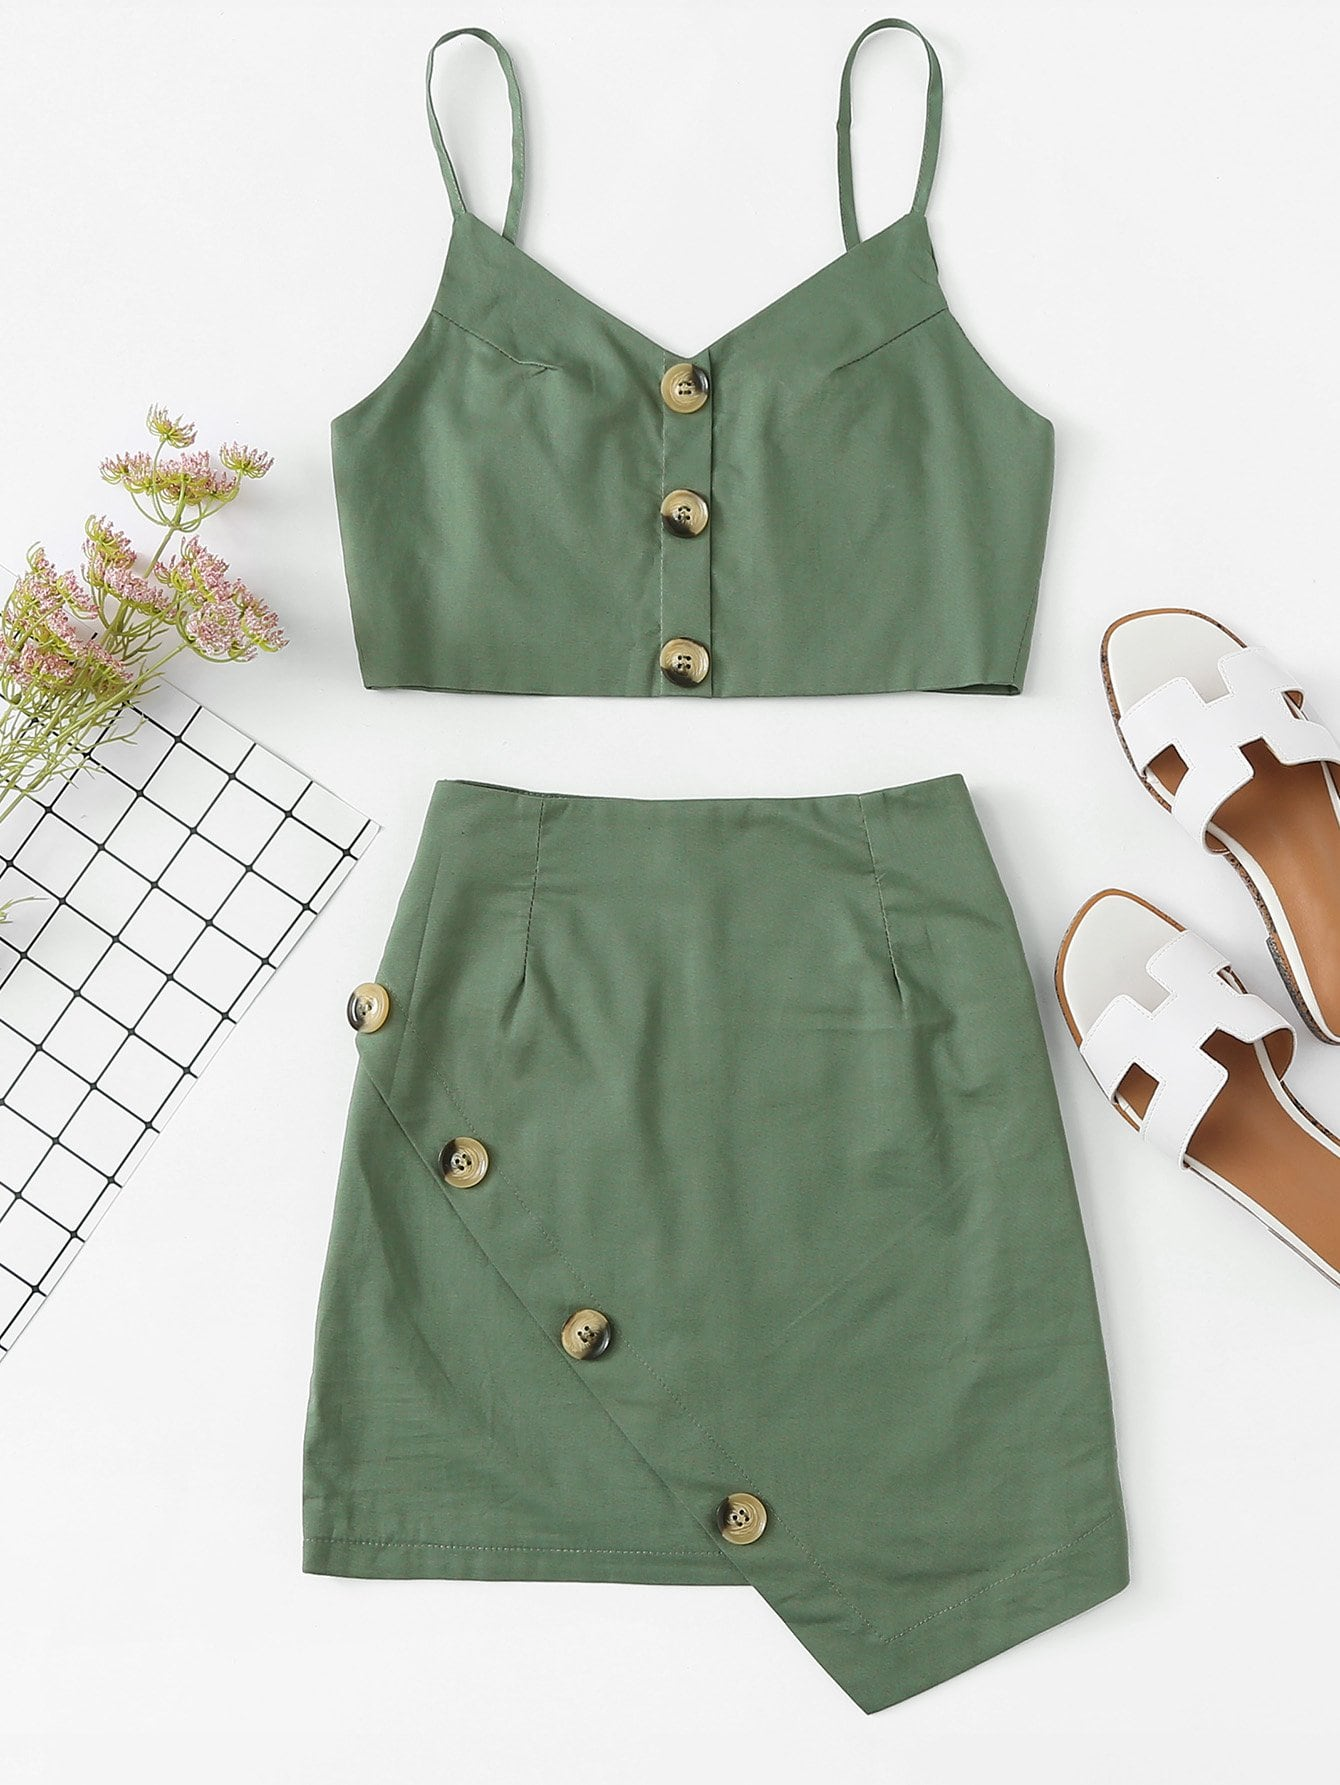 Tie Back Button Detail Cami Top With Skirt gold button detail bodycon skirt